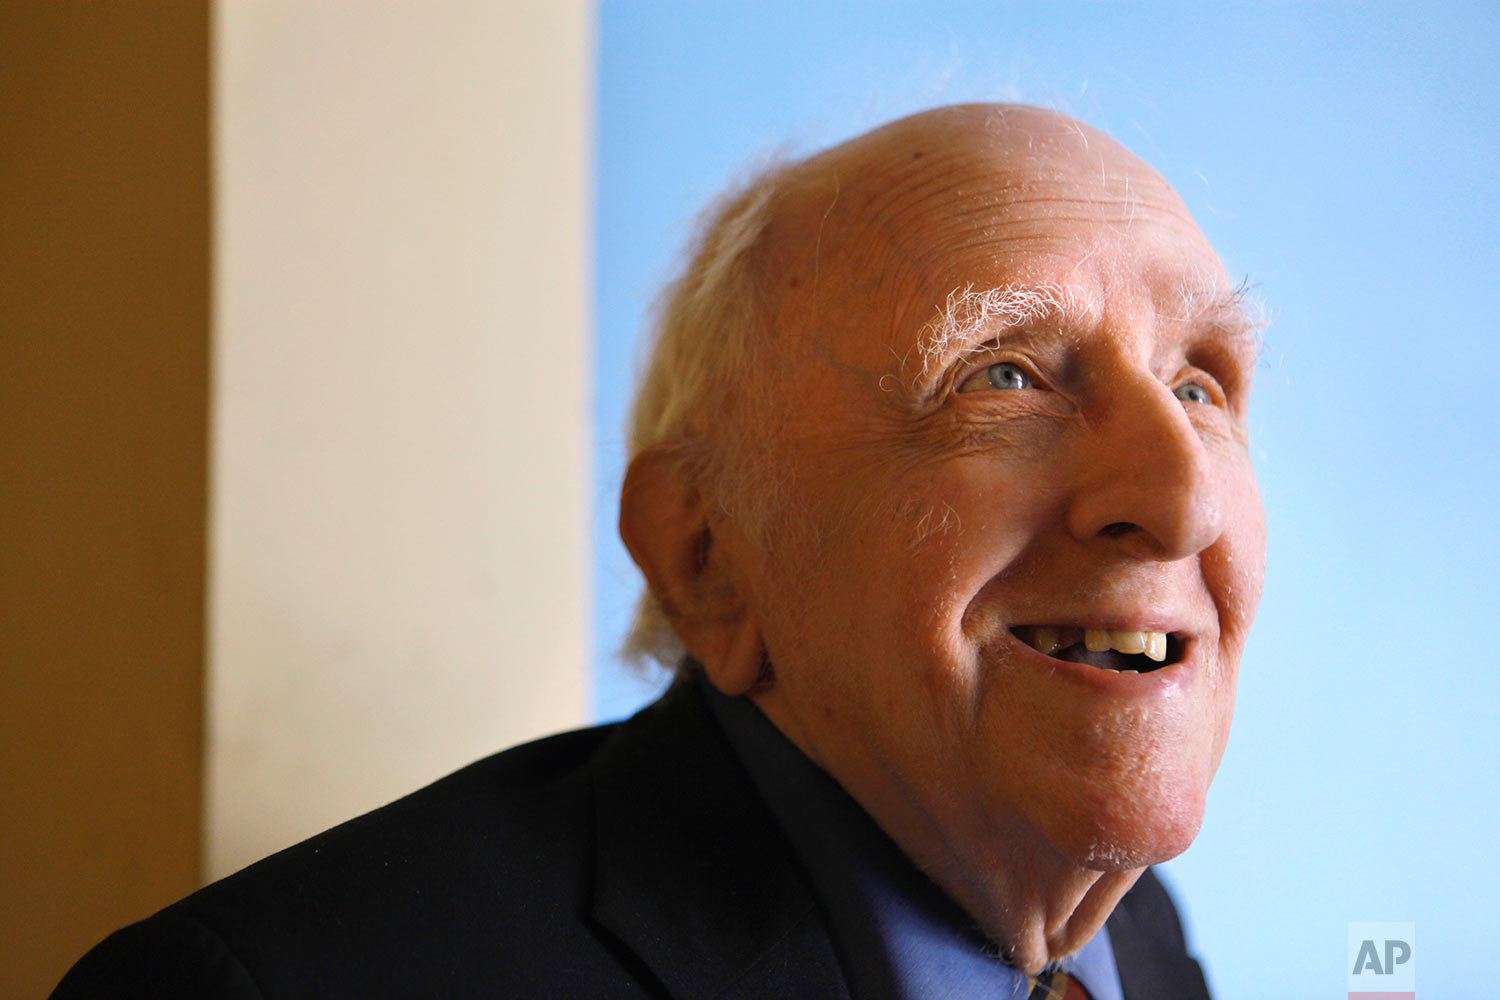 This June 1, 2009 file photo shows Frank Kameny in his home in Washington. Kameny, a government astronomer who sued after he was fired for being gay, took his anti-discrimination case to the Supreme Court in 1961 (the justices declined to hear his appeal), and helped stage the first gay rights protest outside the White House in 1965. (AP Photo/Jacquelyn Martin)